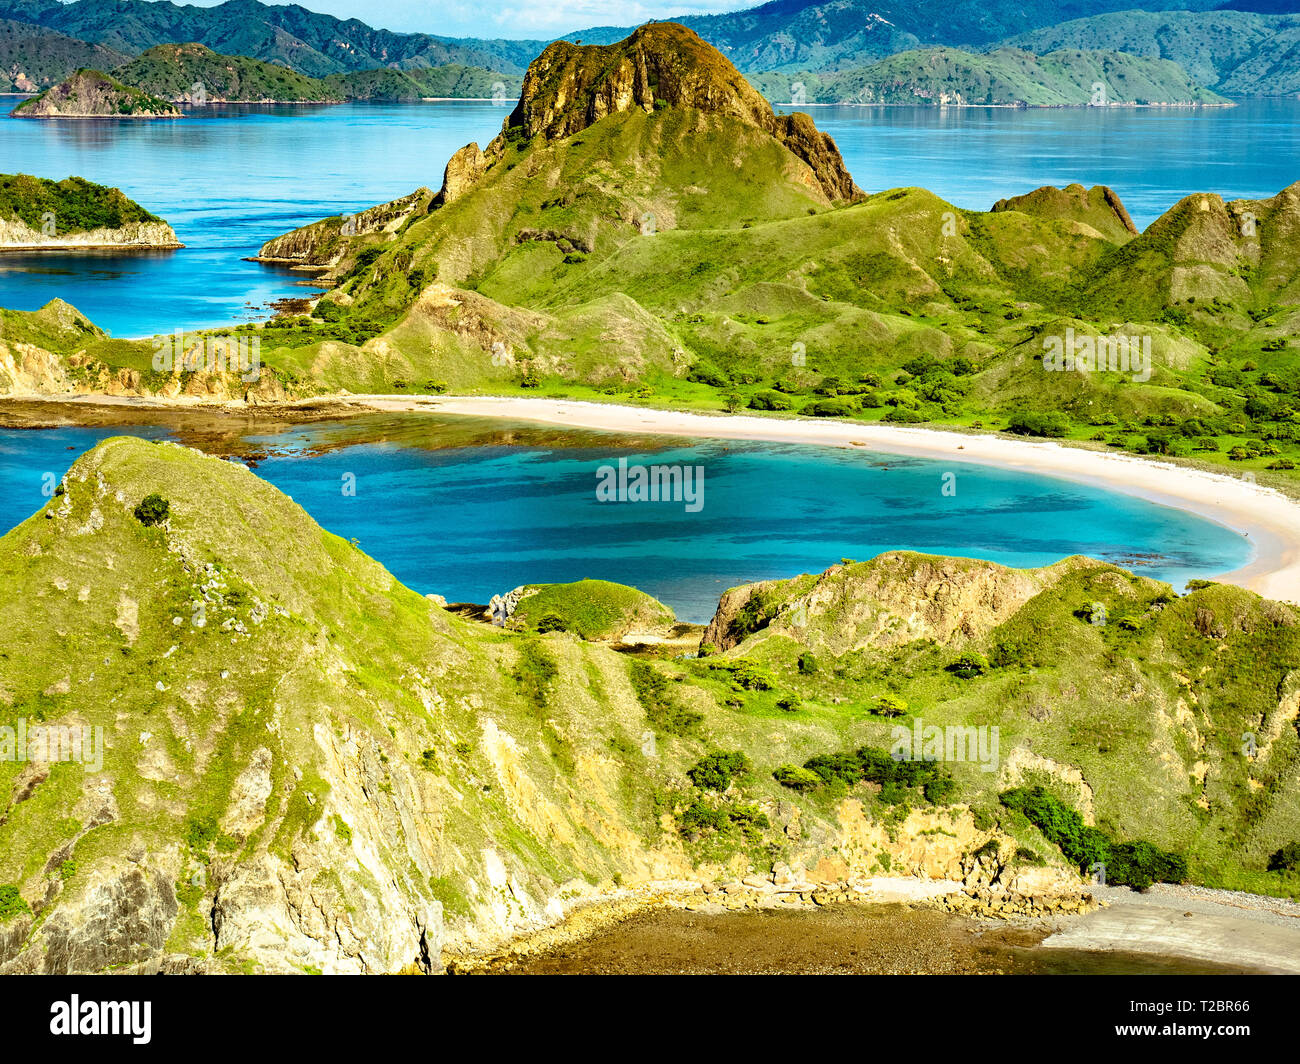 Aerial view of hills in Pulau Padar island in between Komodo and Rinca Islands near Labuan Bajo in Indonesia. - Stock Image